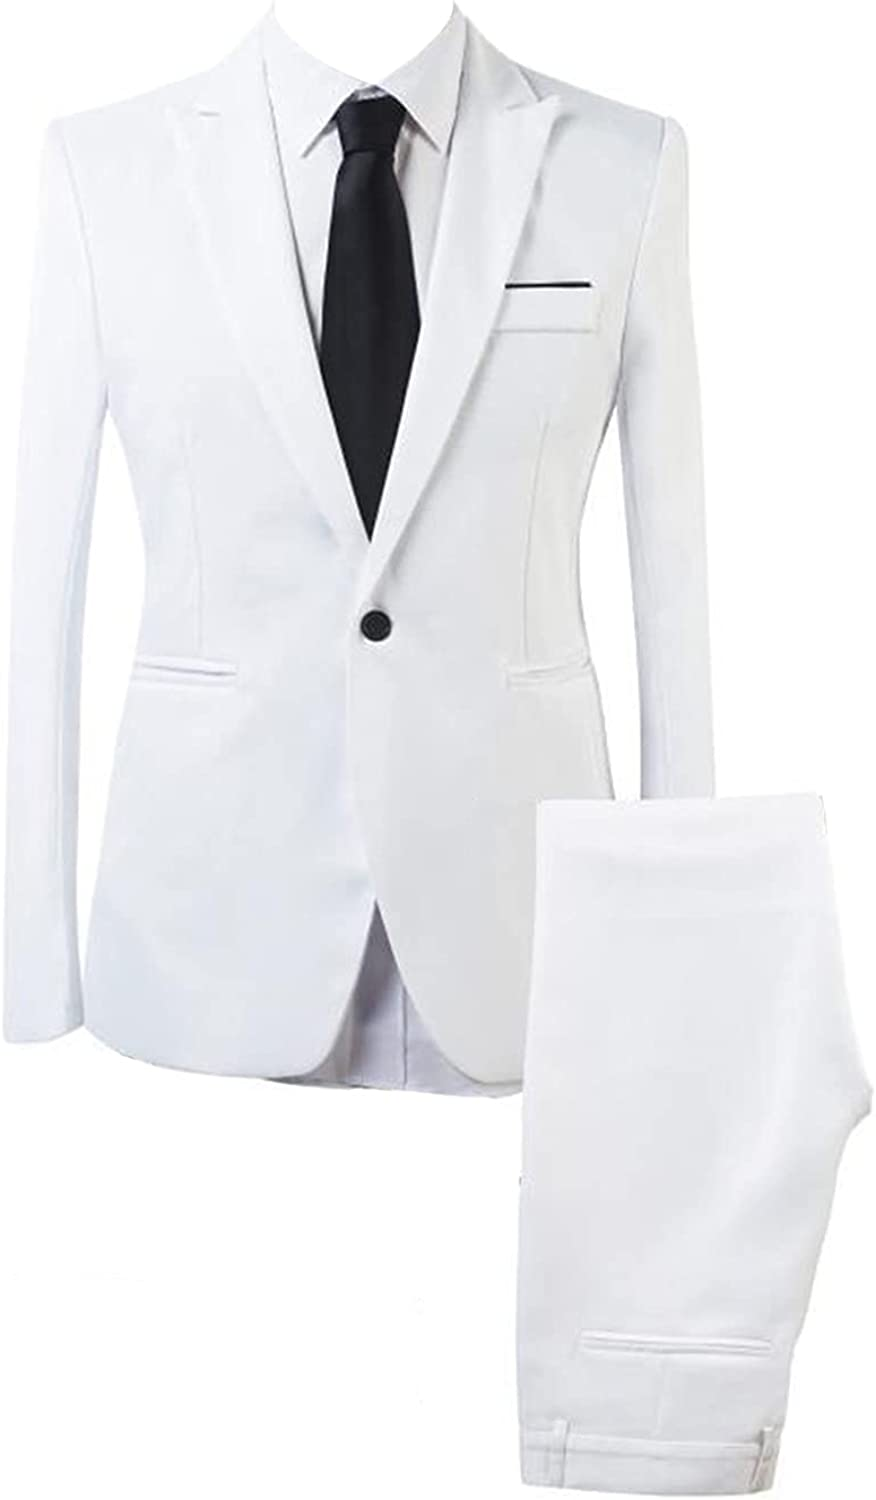 Men's Max 50% OFF 2 Piece Slim Fit Suit Set Business S Cheap mail order specialty store 1 Prom Button Wedding